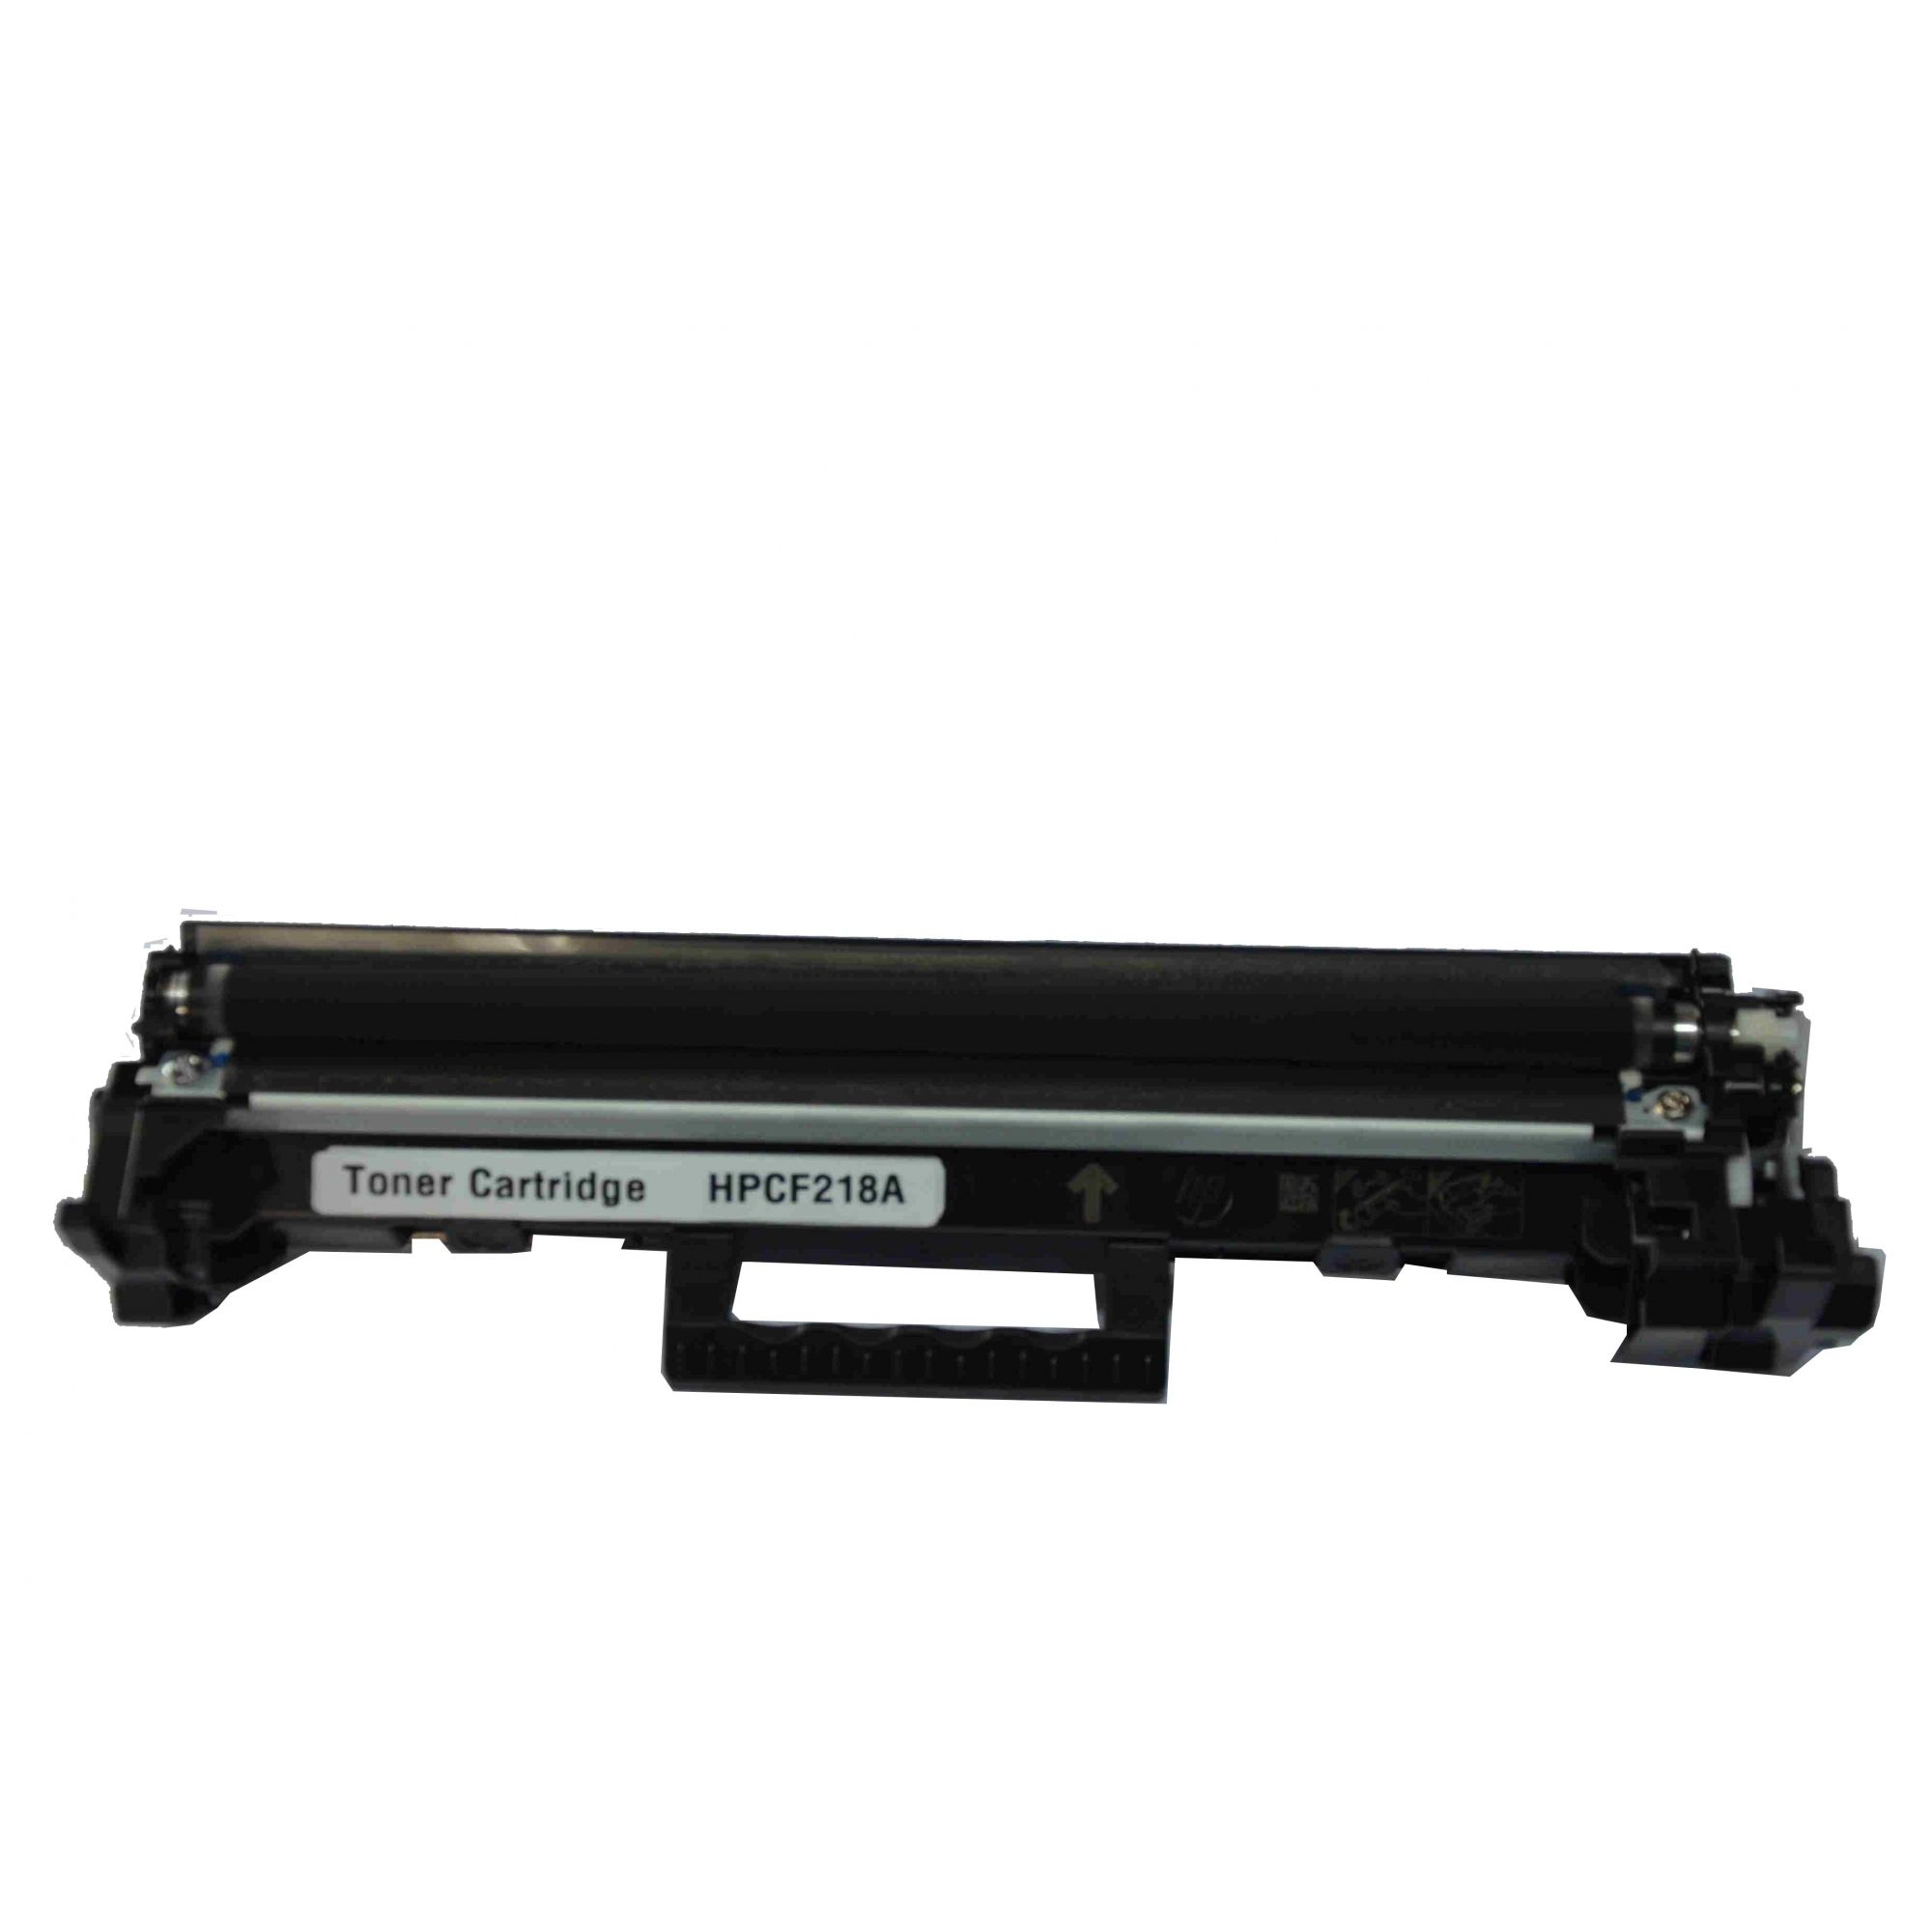 Toner HP CF 218A 18A (COM CHIP)  CF218 / HP218 / HP18  M132NW M132FN M132FW M132A M132SNW M132FP COMPATIVEL